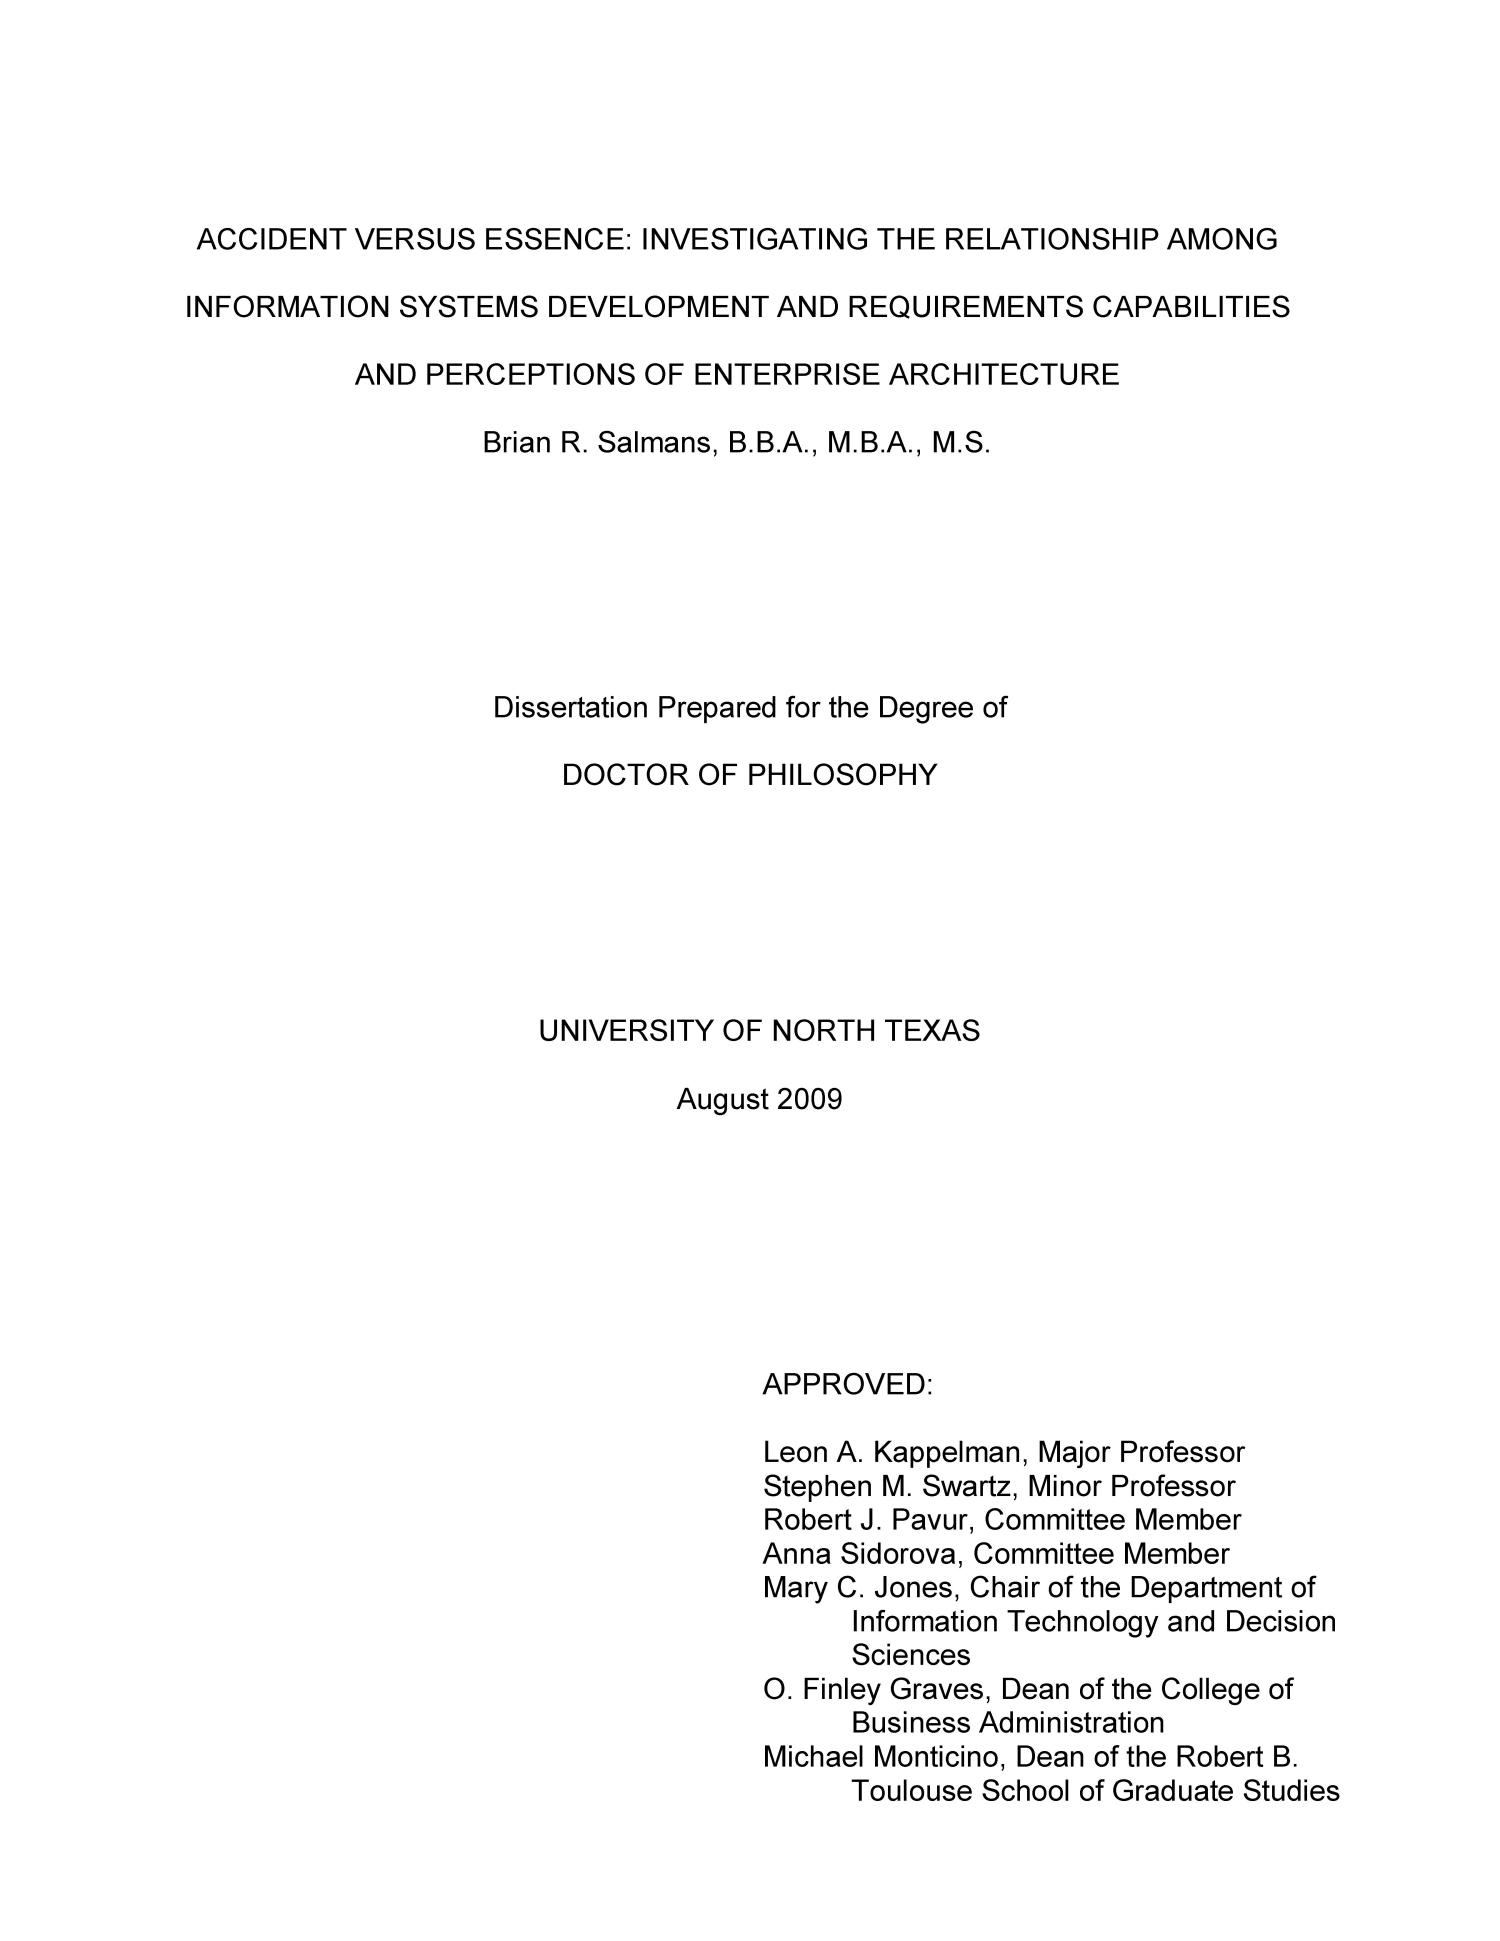 Accident versus Essence:  Investigating the Relationship Among Information Systems Development and Requirements Capabilities and Perceptions of Enterprise Architecture                                                                                                      Title Page